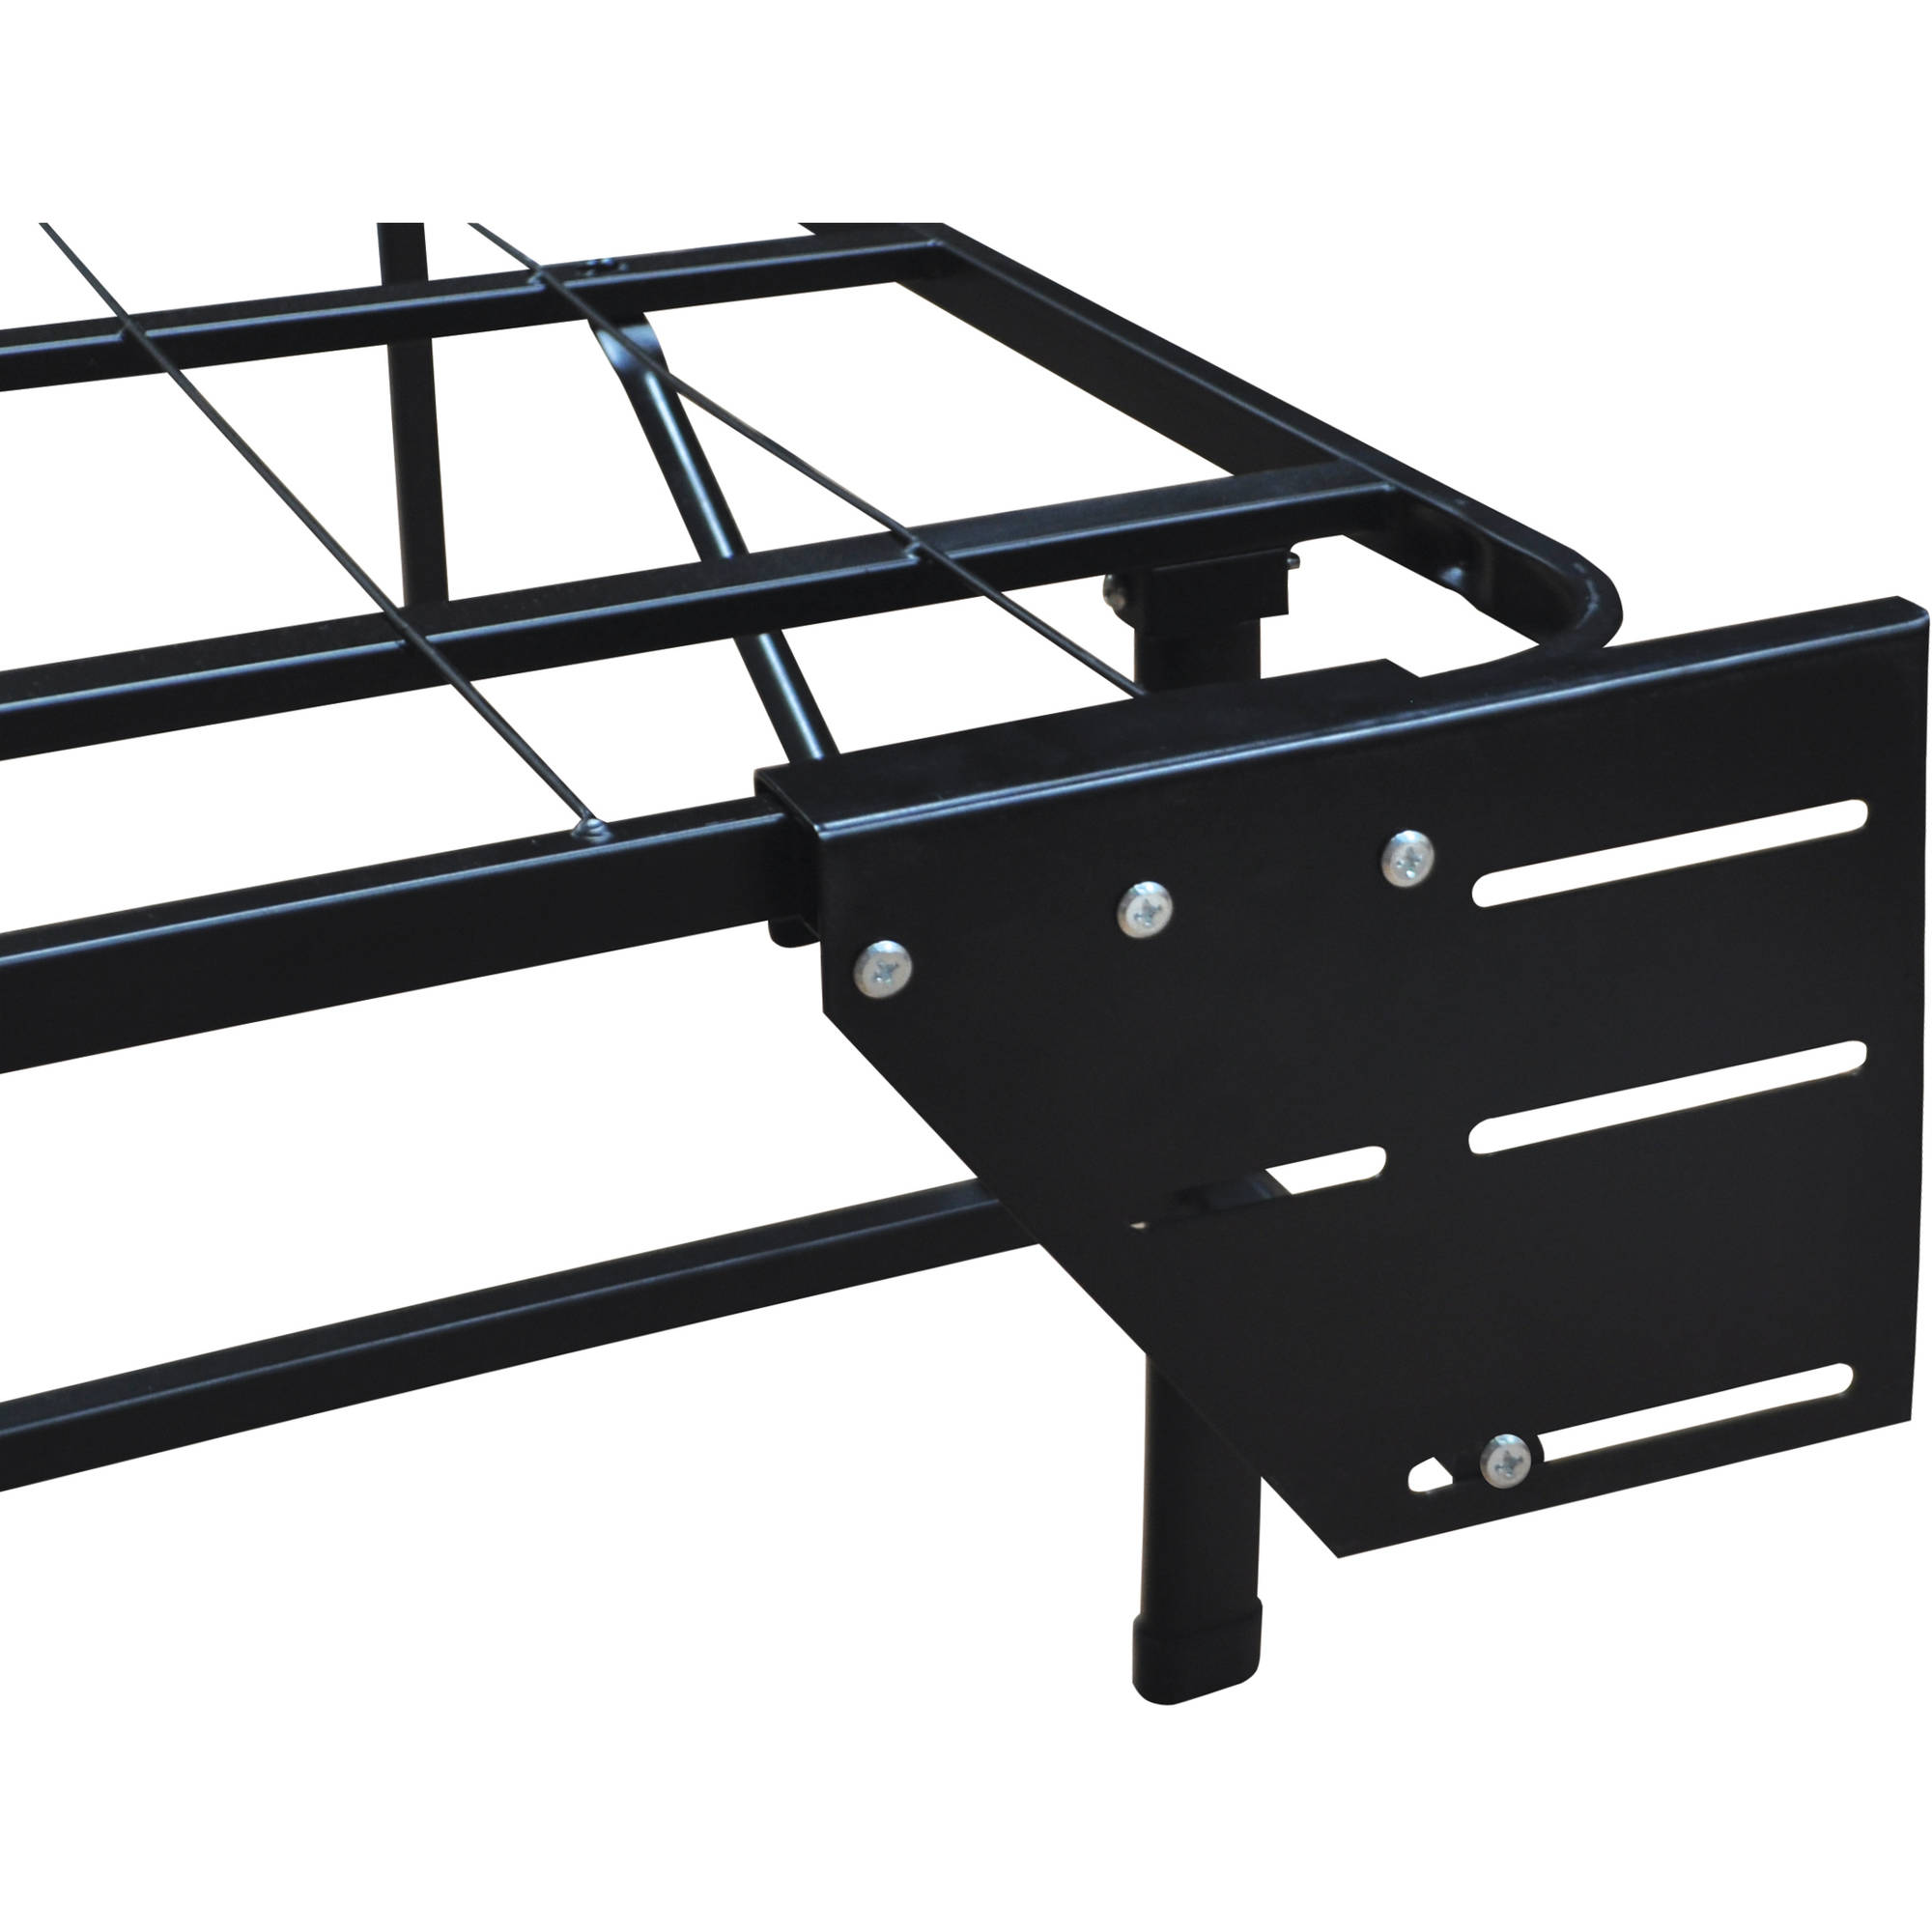 Queen Bed Headboard Attachment Bracket Bed Frame Headboard Kit Mounting Hardware